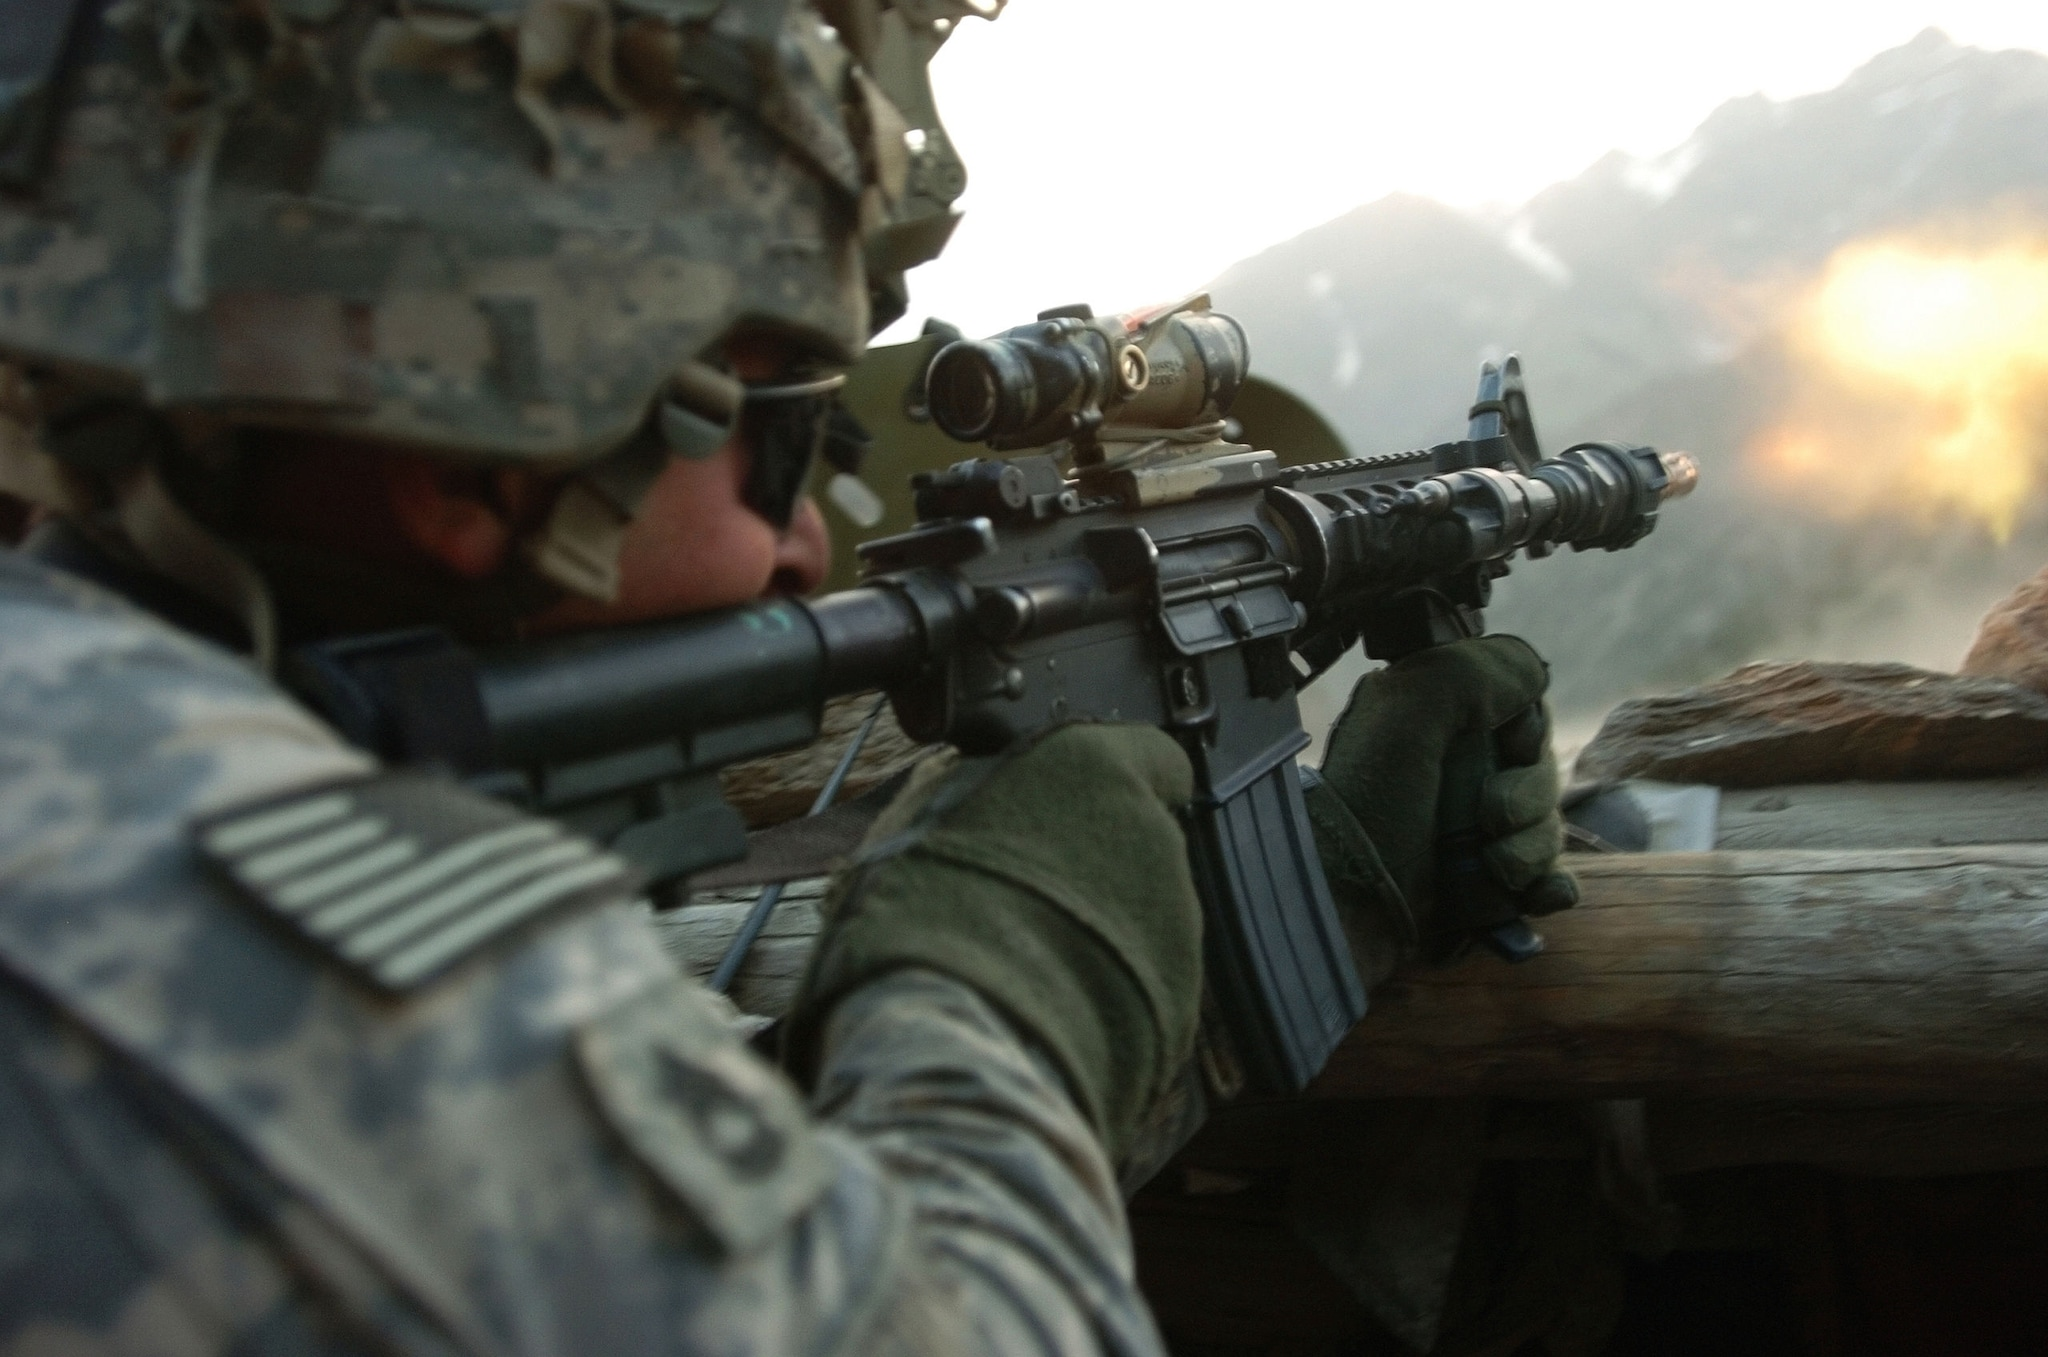 A U.S. Army soldier with 1st Battalion, 32nd Infantry Regiment, 10th Mountain Division, fires his weapon during a gun battle with insurgent forces in Barge Matal, during Operation Mountain Fire on July 12, 2009. The tiny mountain village, in Afghanistan's eastern Nuristan province, was overwhelmed by insurgents until combined elements of the Afghan National Security Forces and International Security Assistance Forces quickly forced the insurgents to flee. (Photo by U.S. Army Sgt. Matthew C. Moeller, 5th Mobile Public Affairs Detachment)